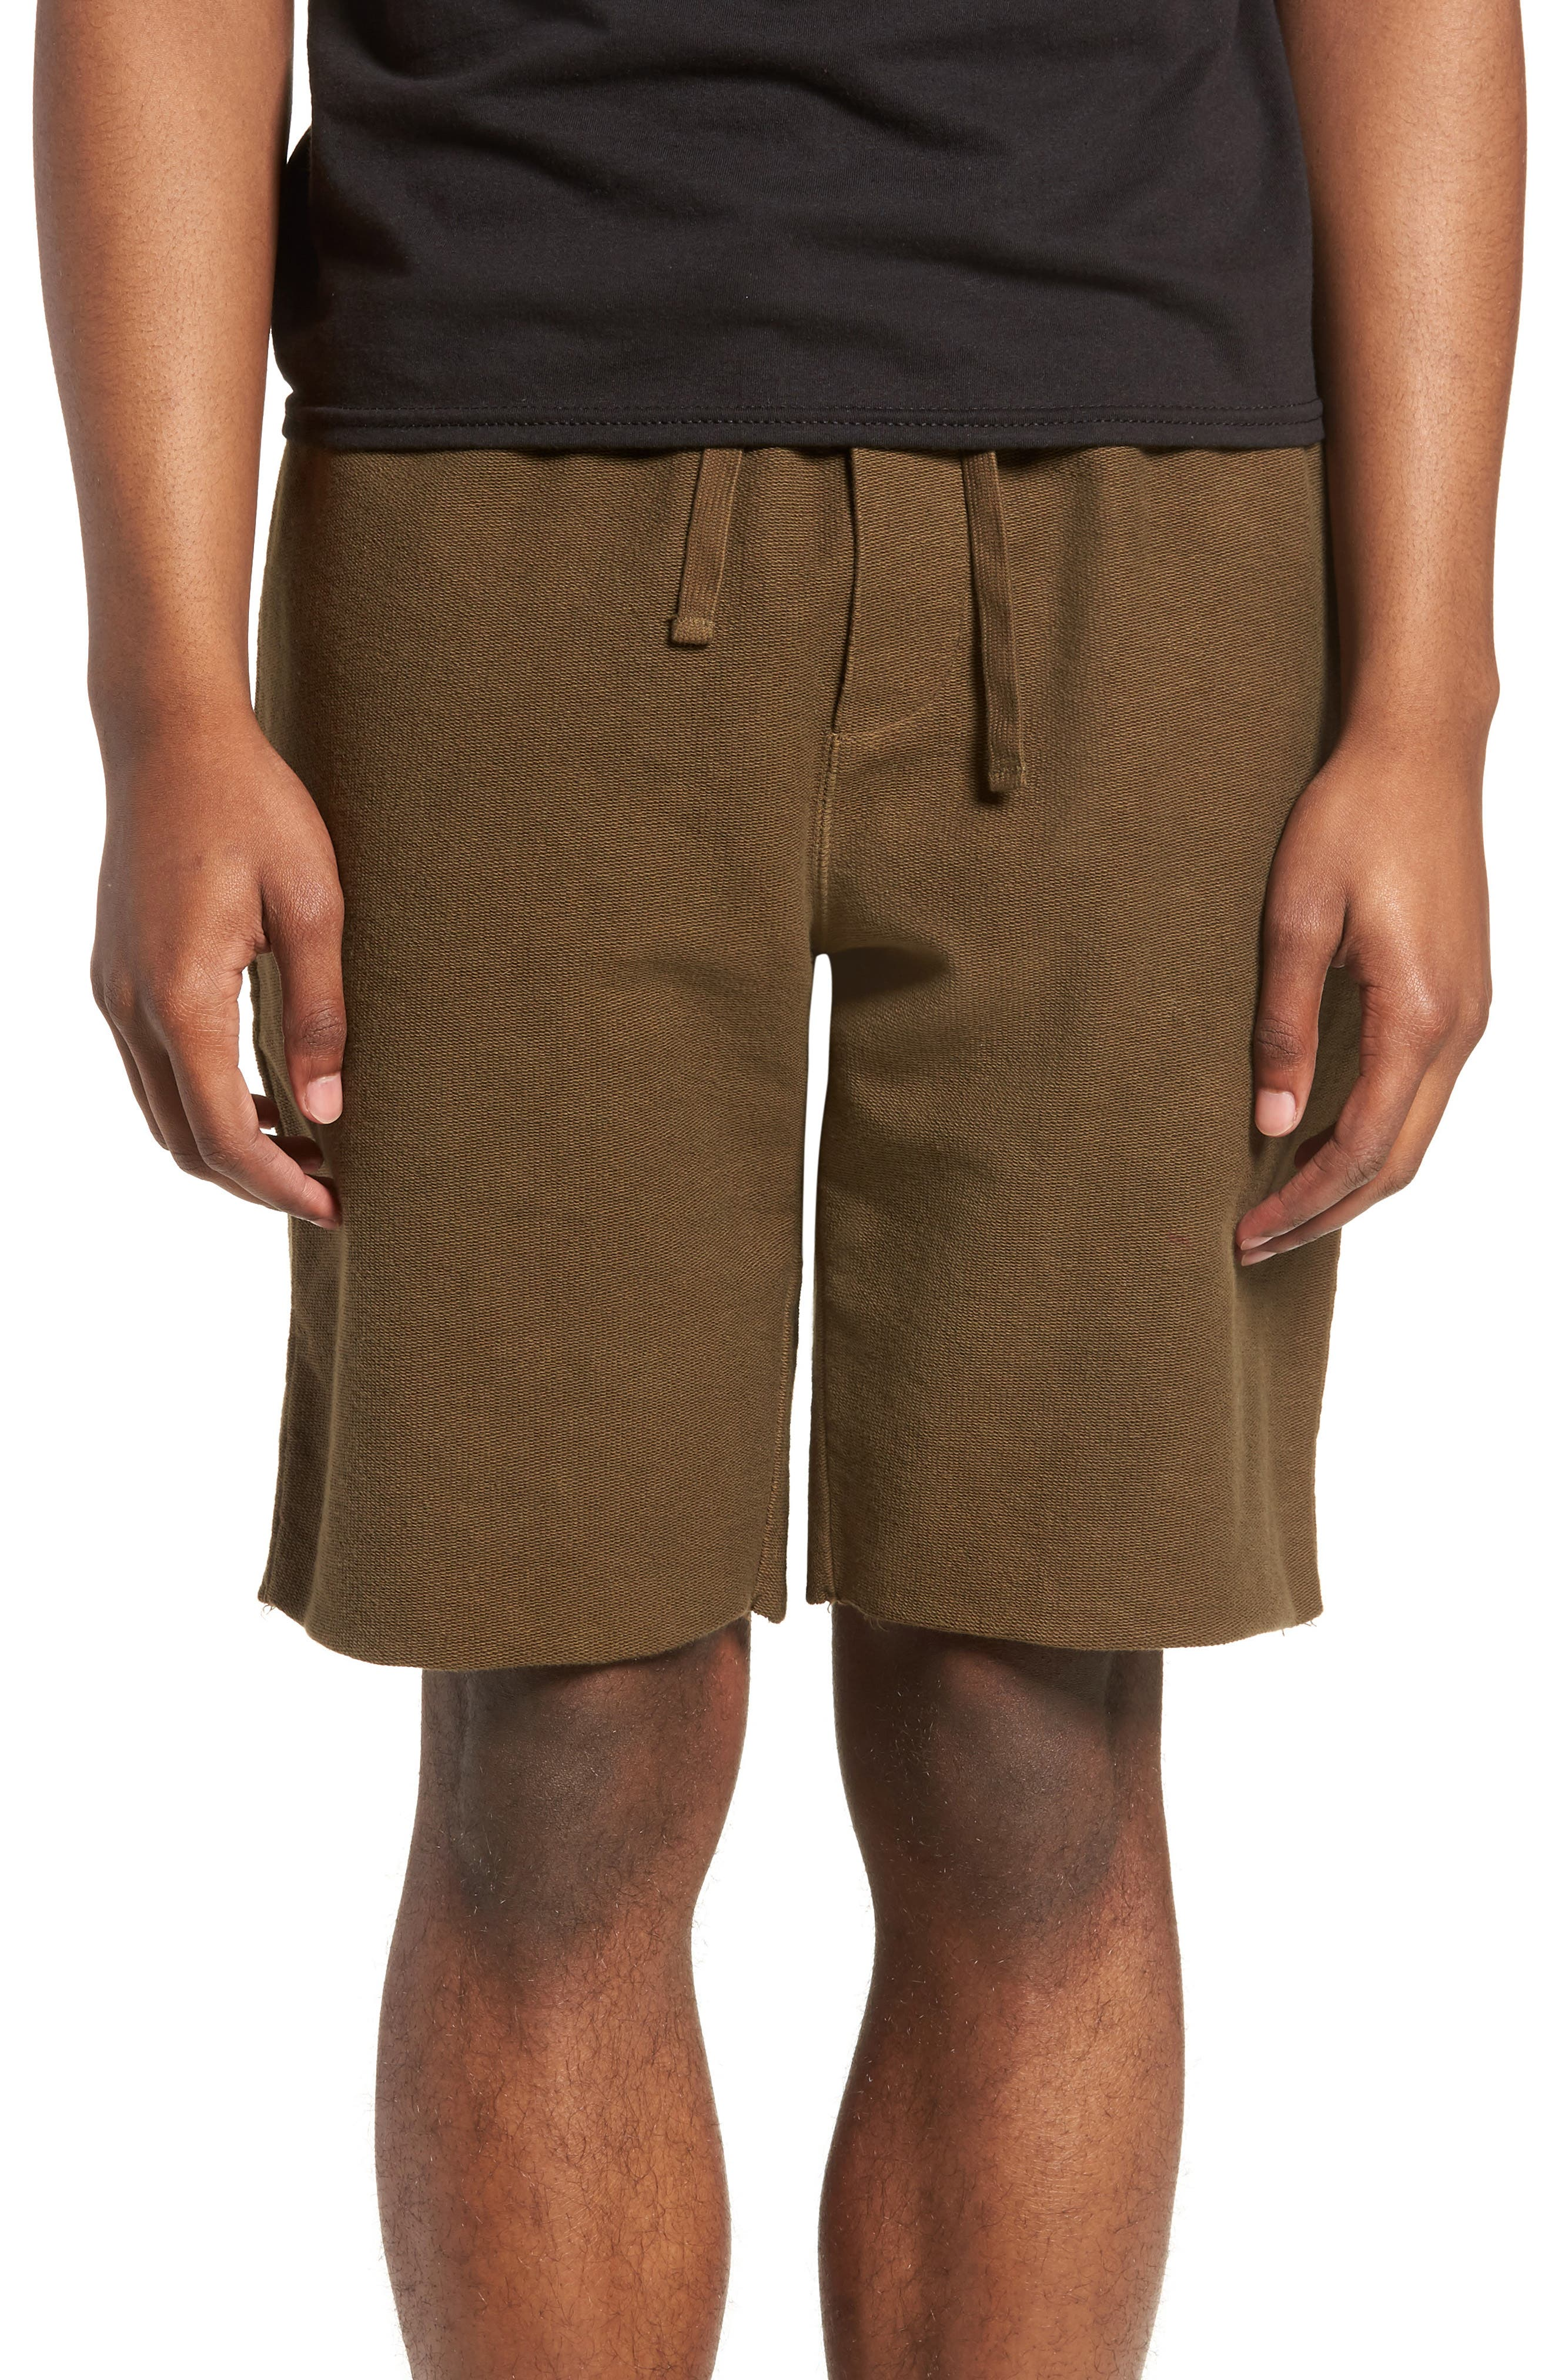 THE RAIL Reverse Terry Shorts, Main, color, 315